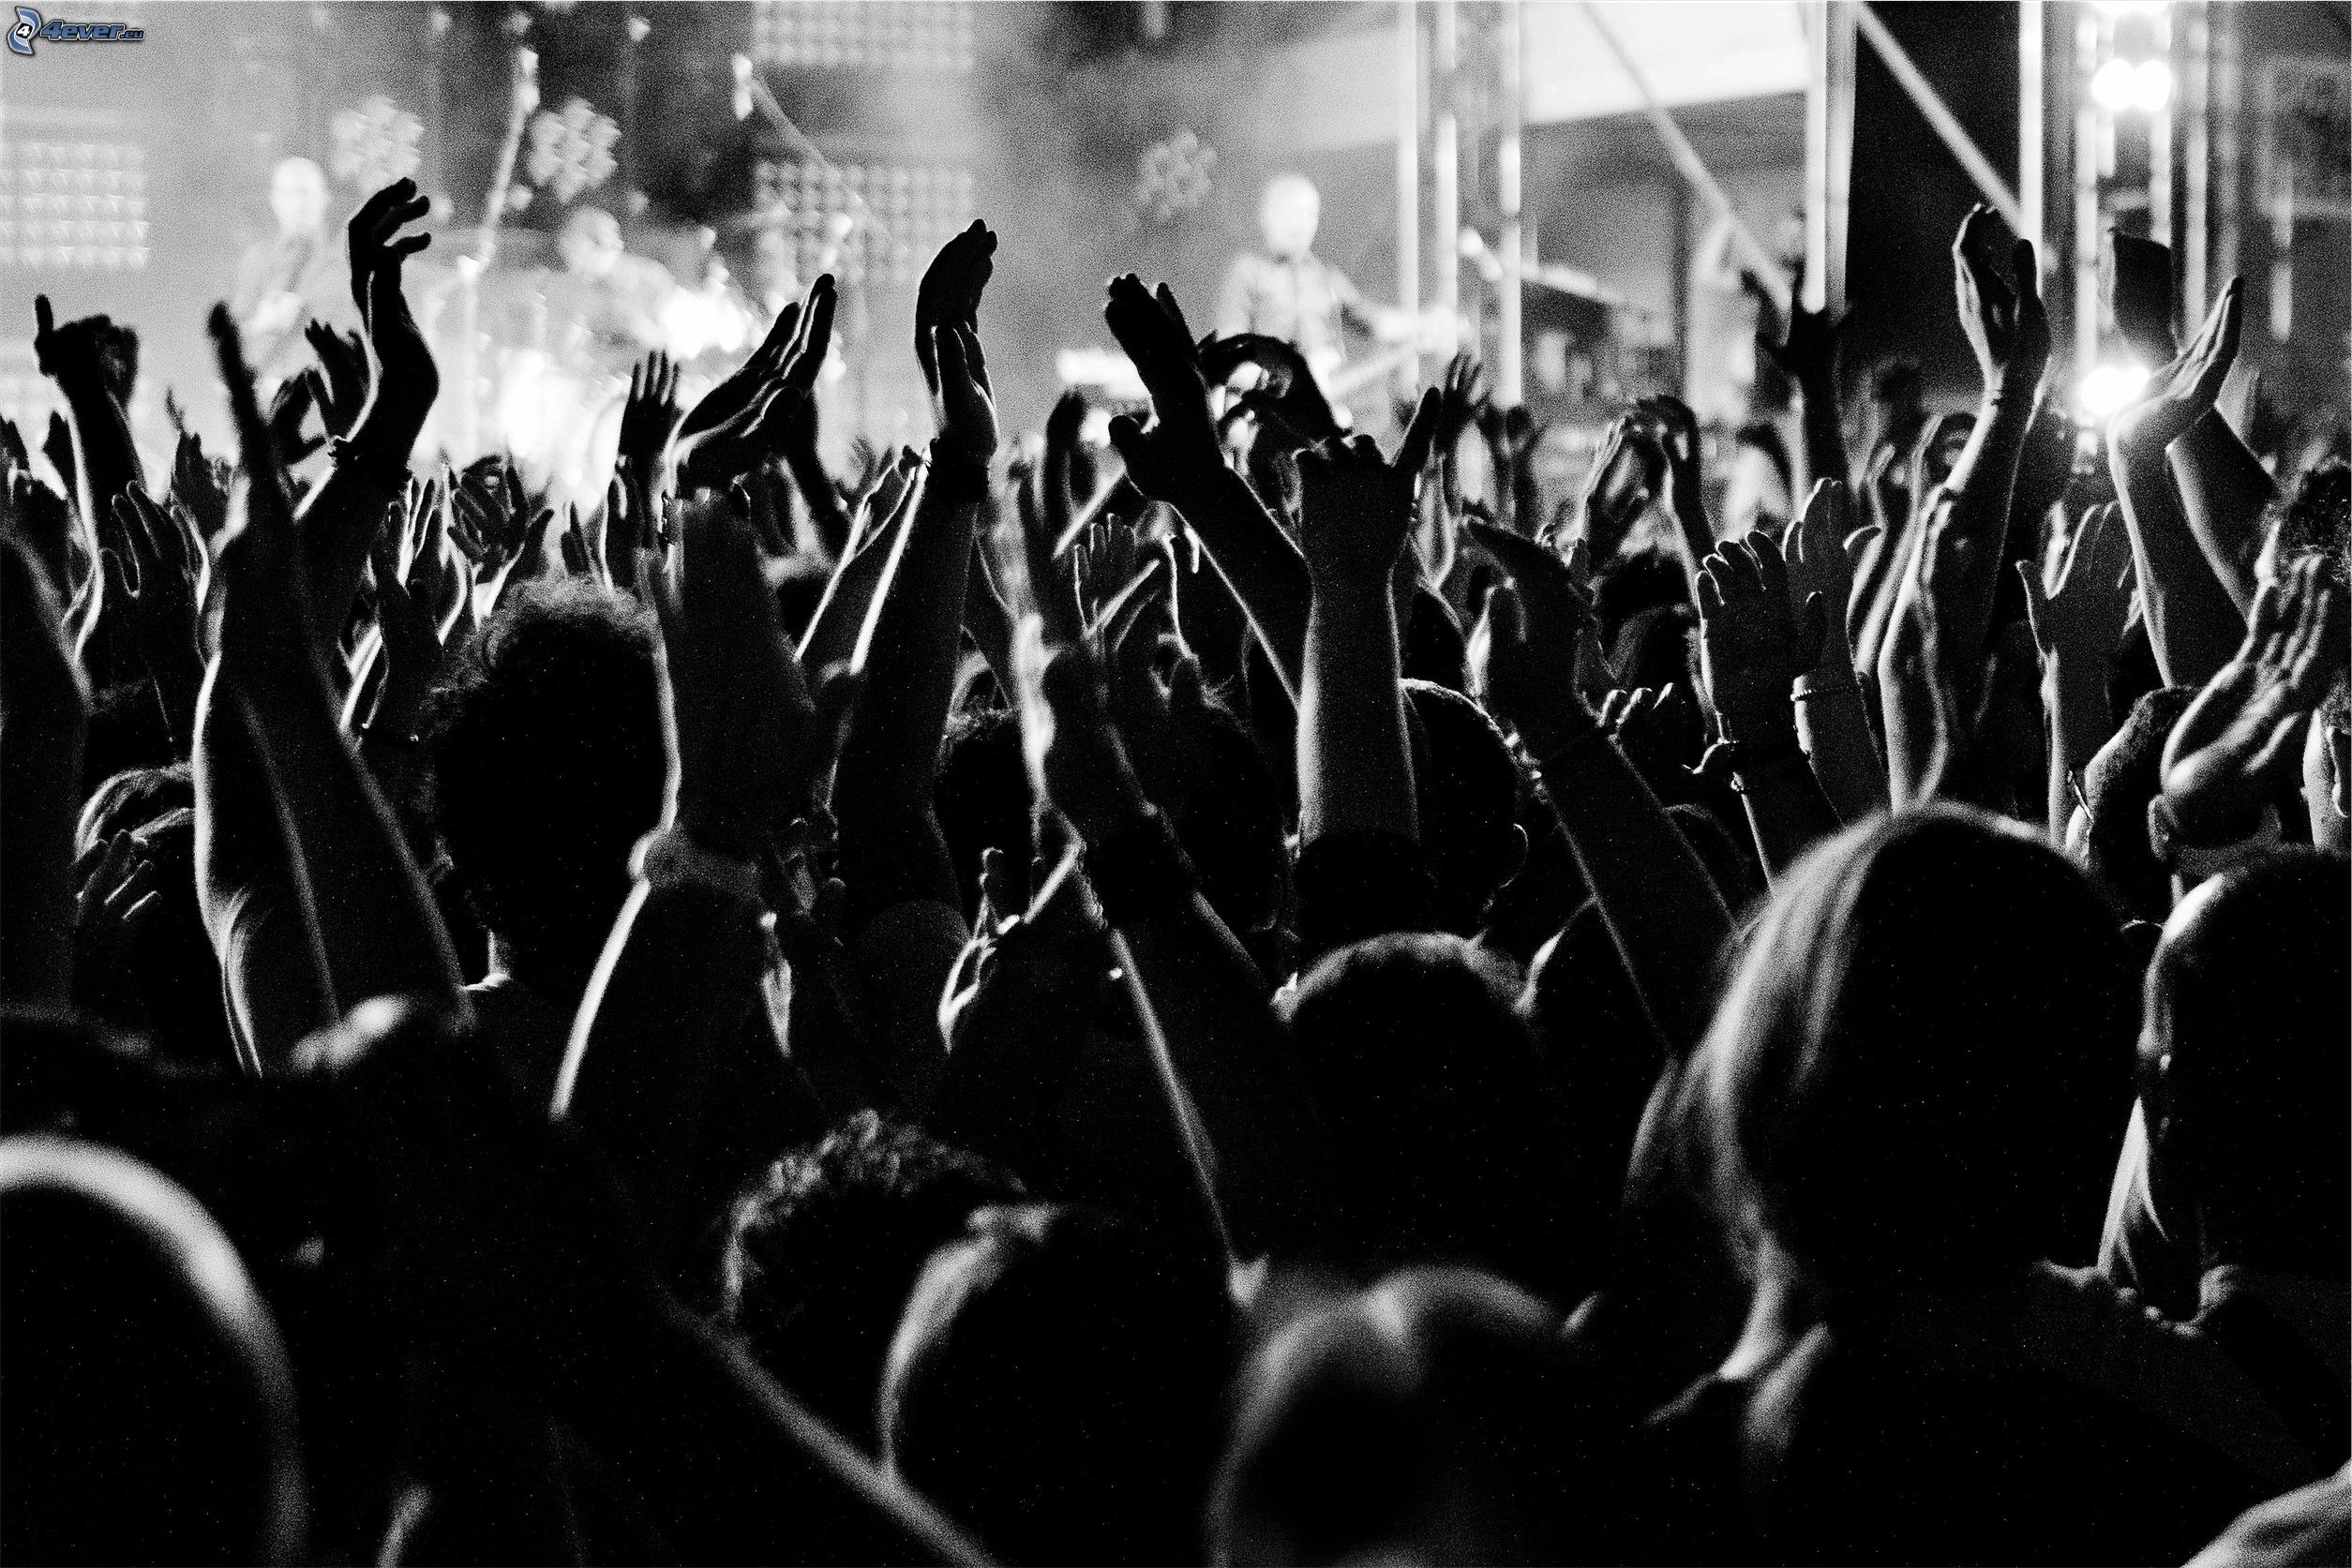 Concert crowd hands black and white - photo#7